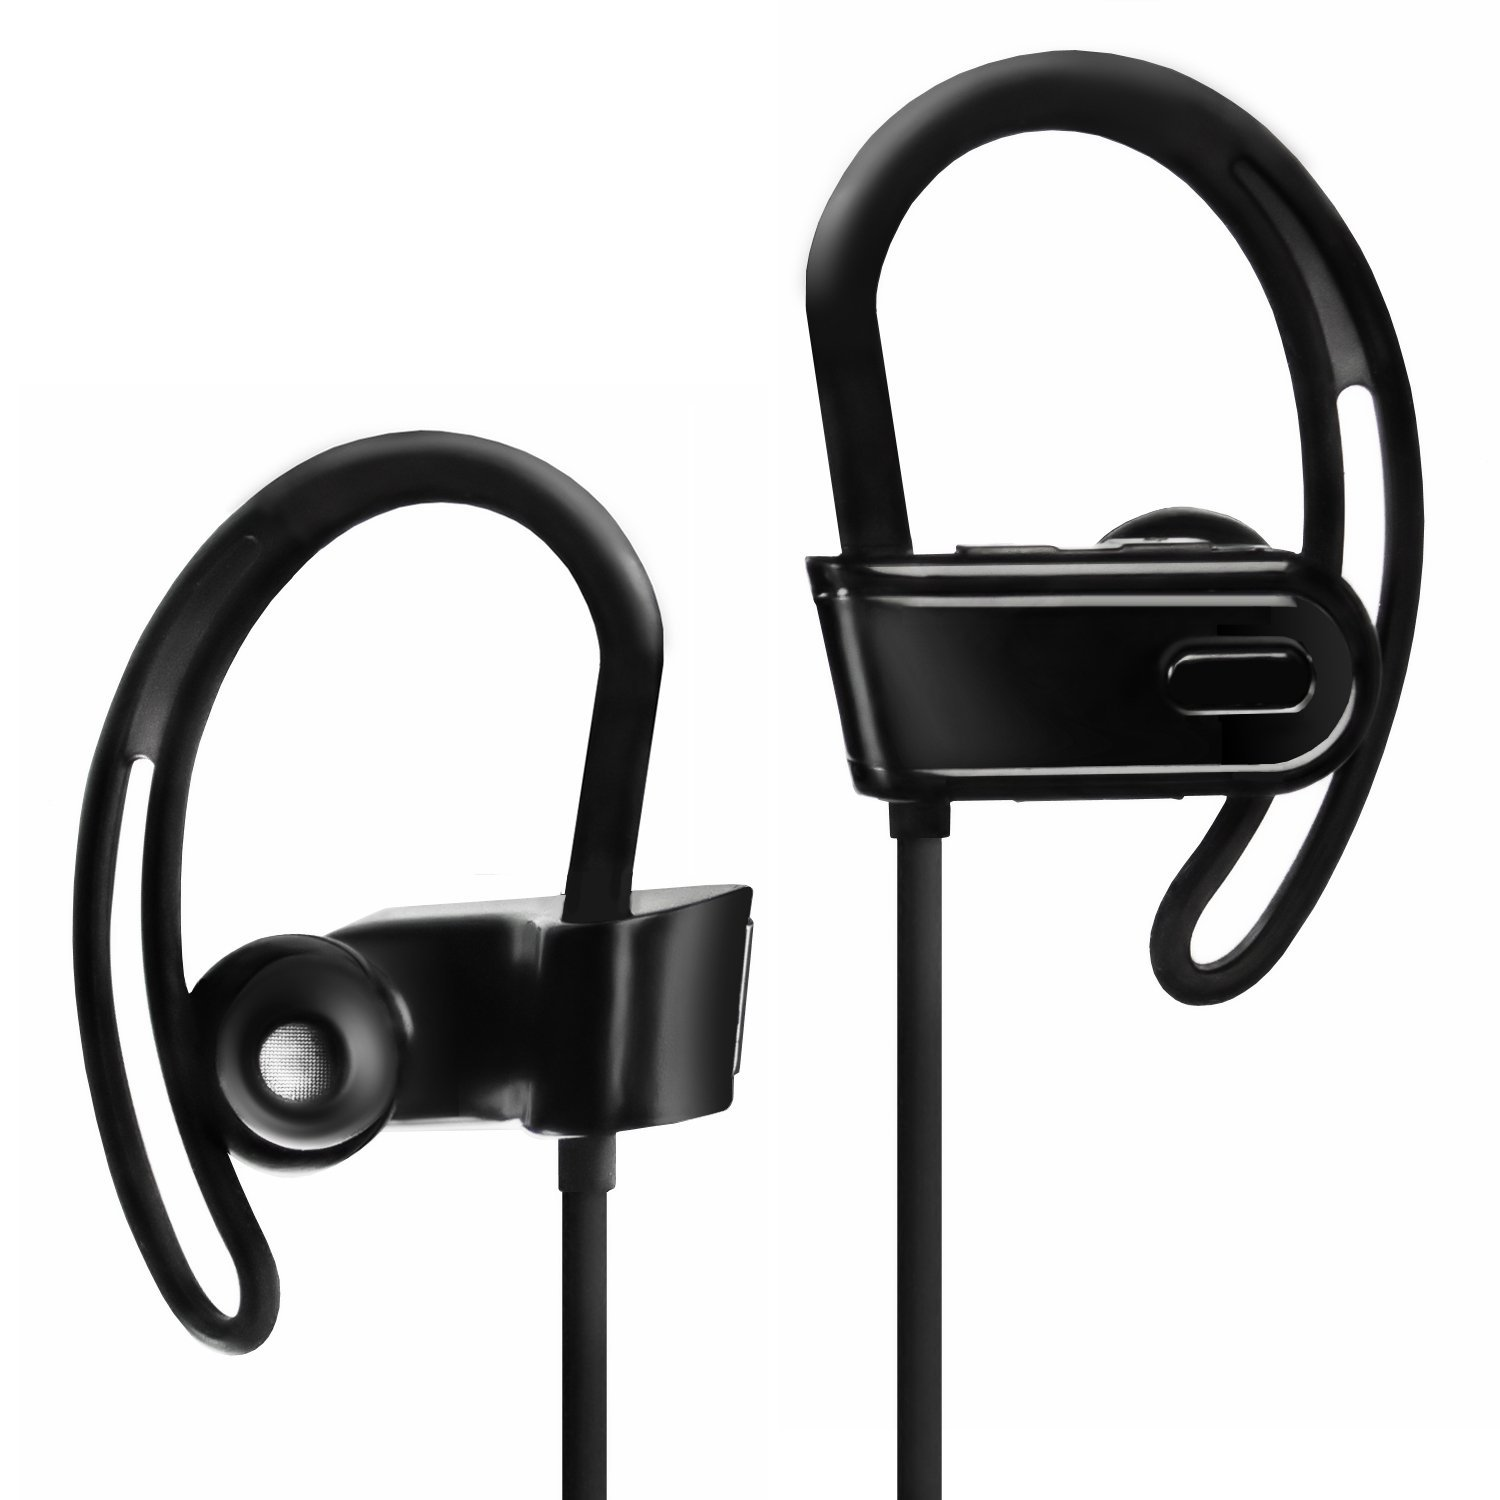 Mobility Sport XS In-Ear Wireless Bluetooth Headphones - Noise Cancelling Sweatproof Wireless Headset